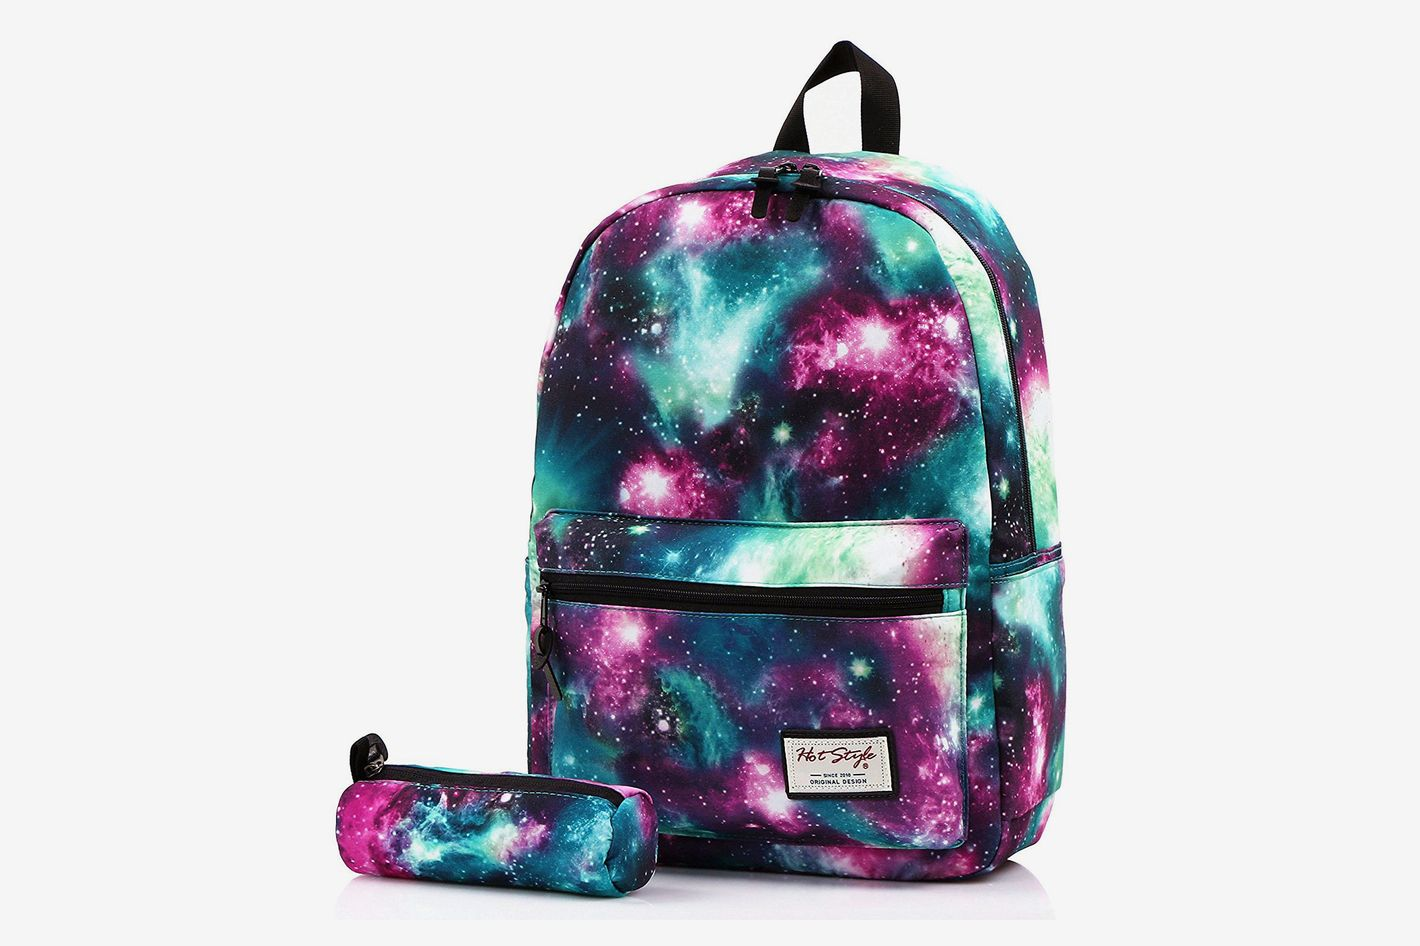 90ddd2a6fb9d HotStyle Trendymax Galaxy Backpack